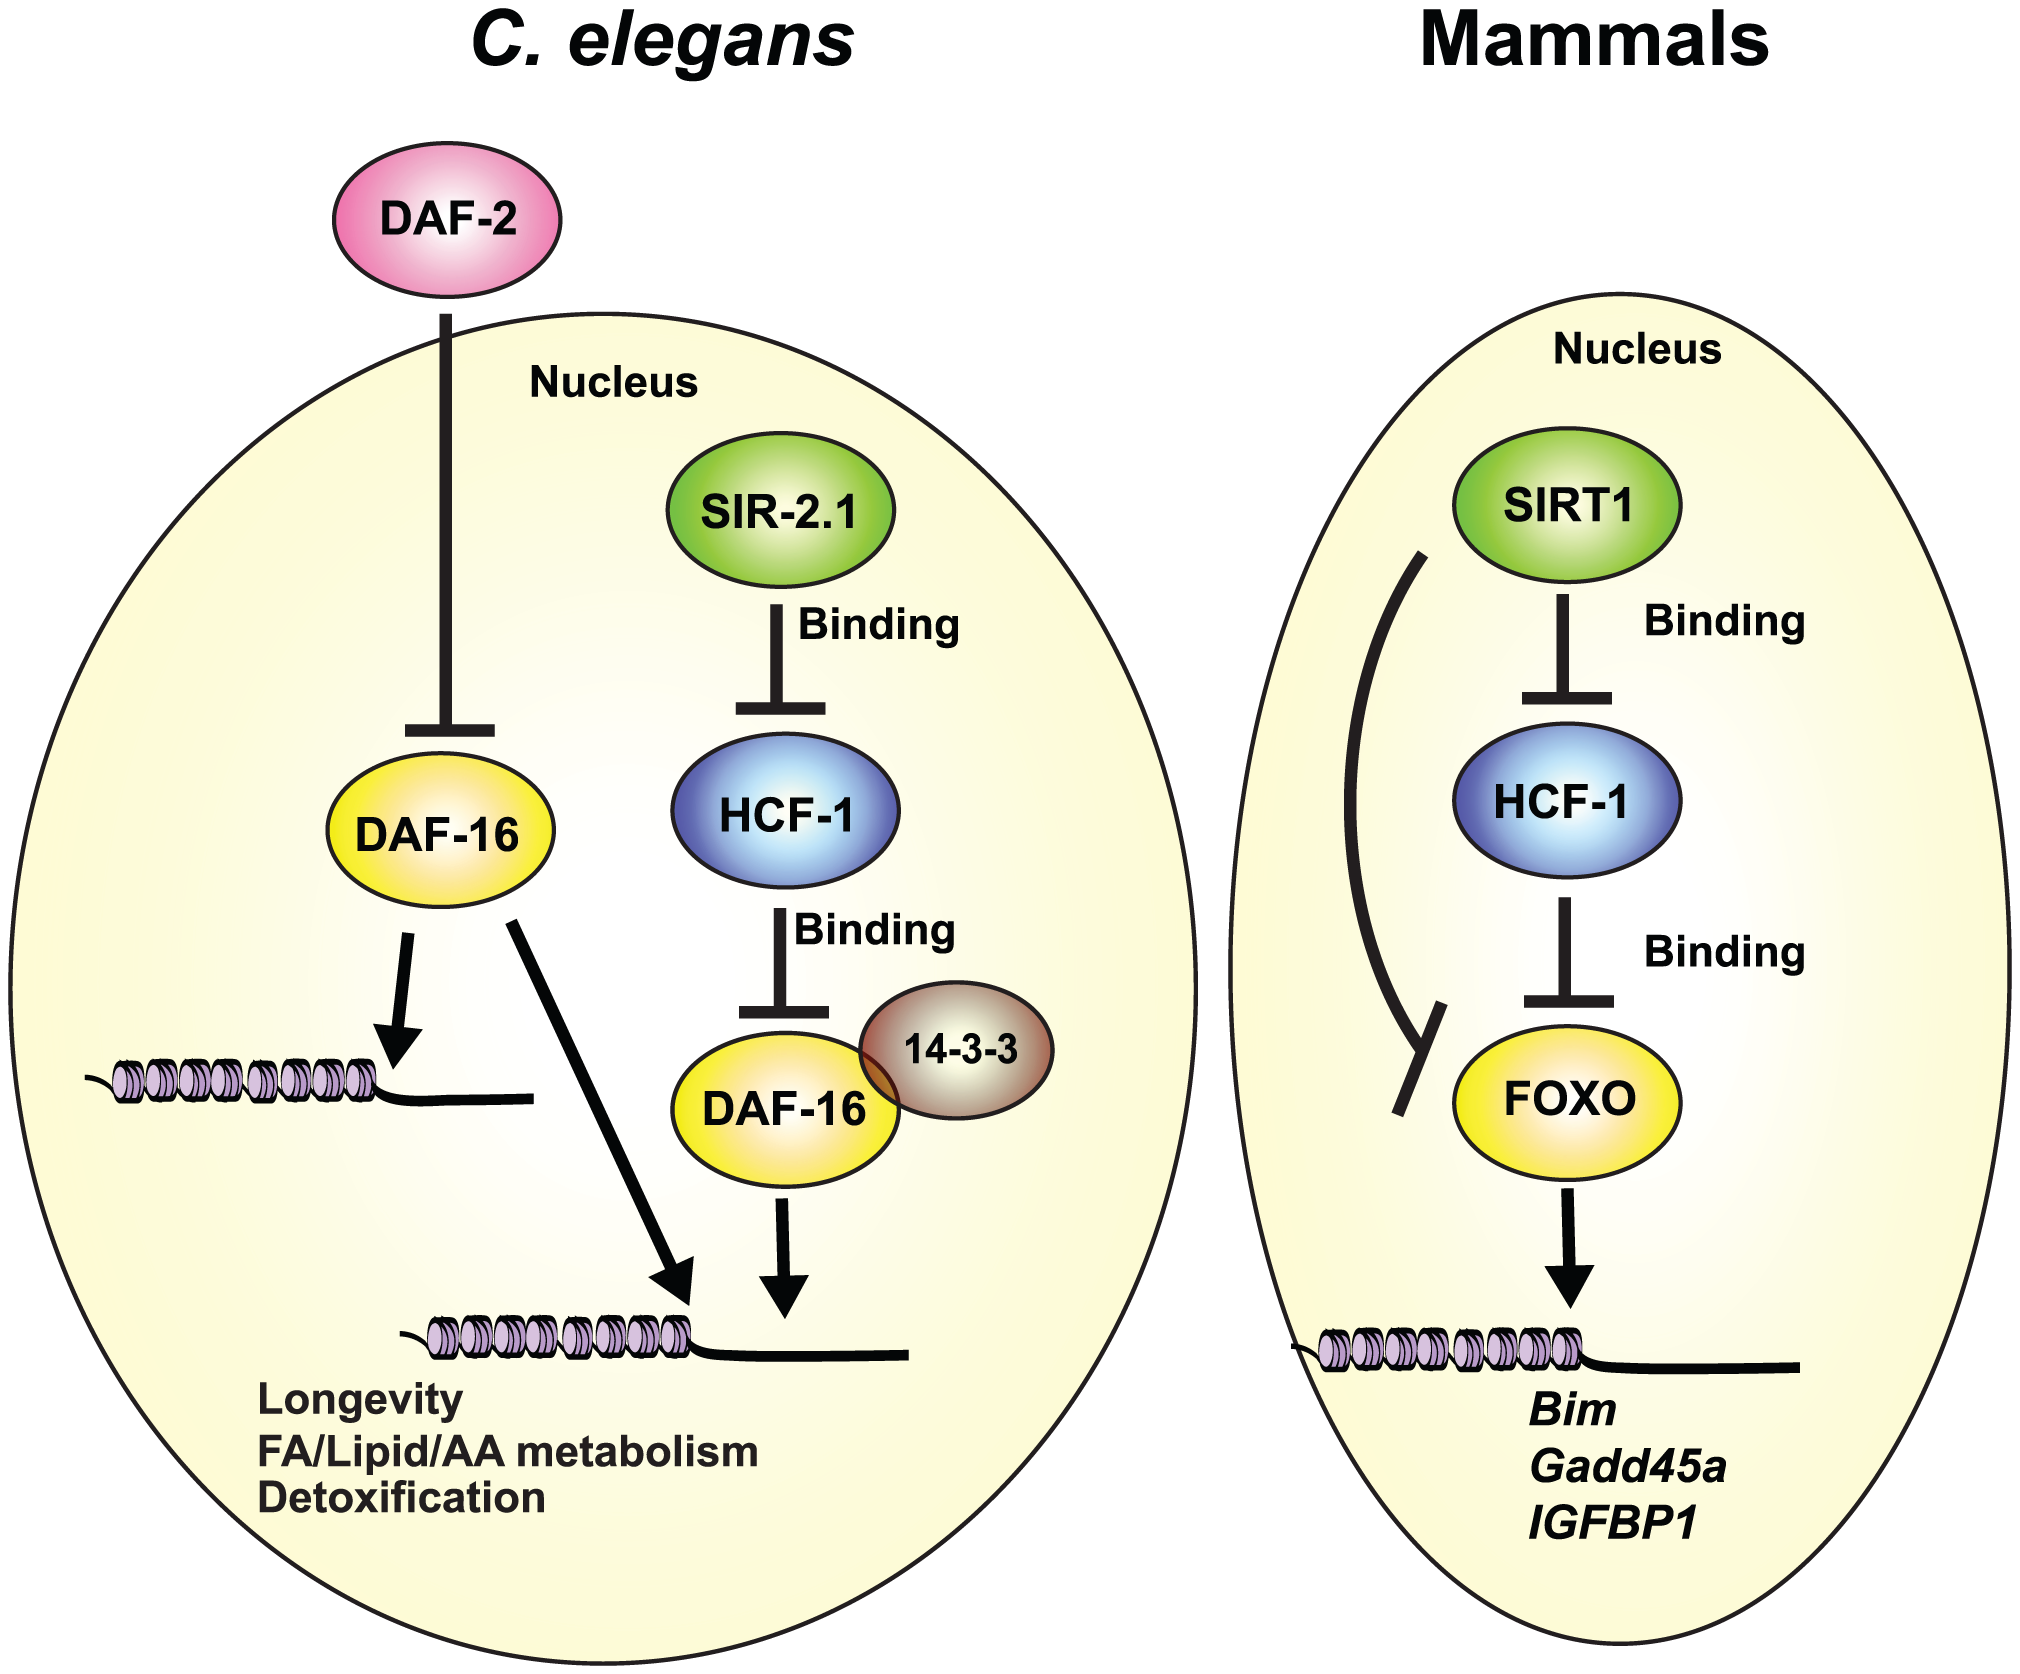 Conserved regulation of DAF-16/FOXO by HCF-1 and SIR-2.1/SIRT1.